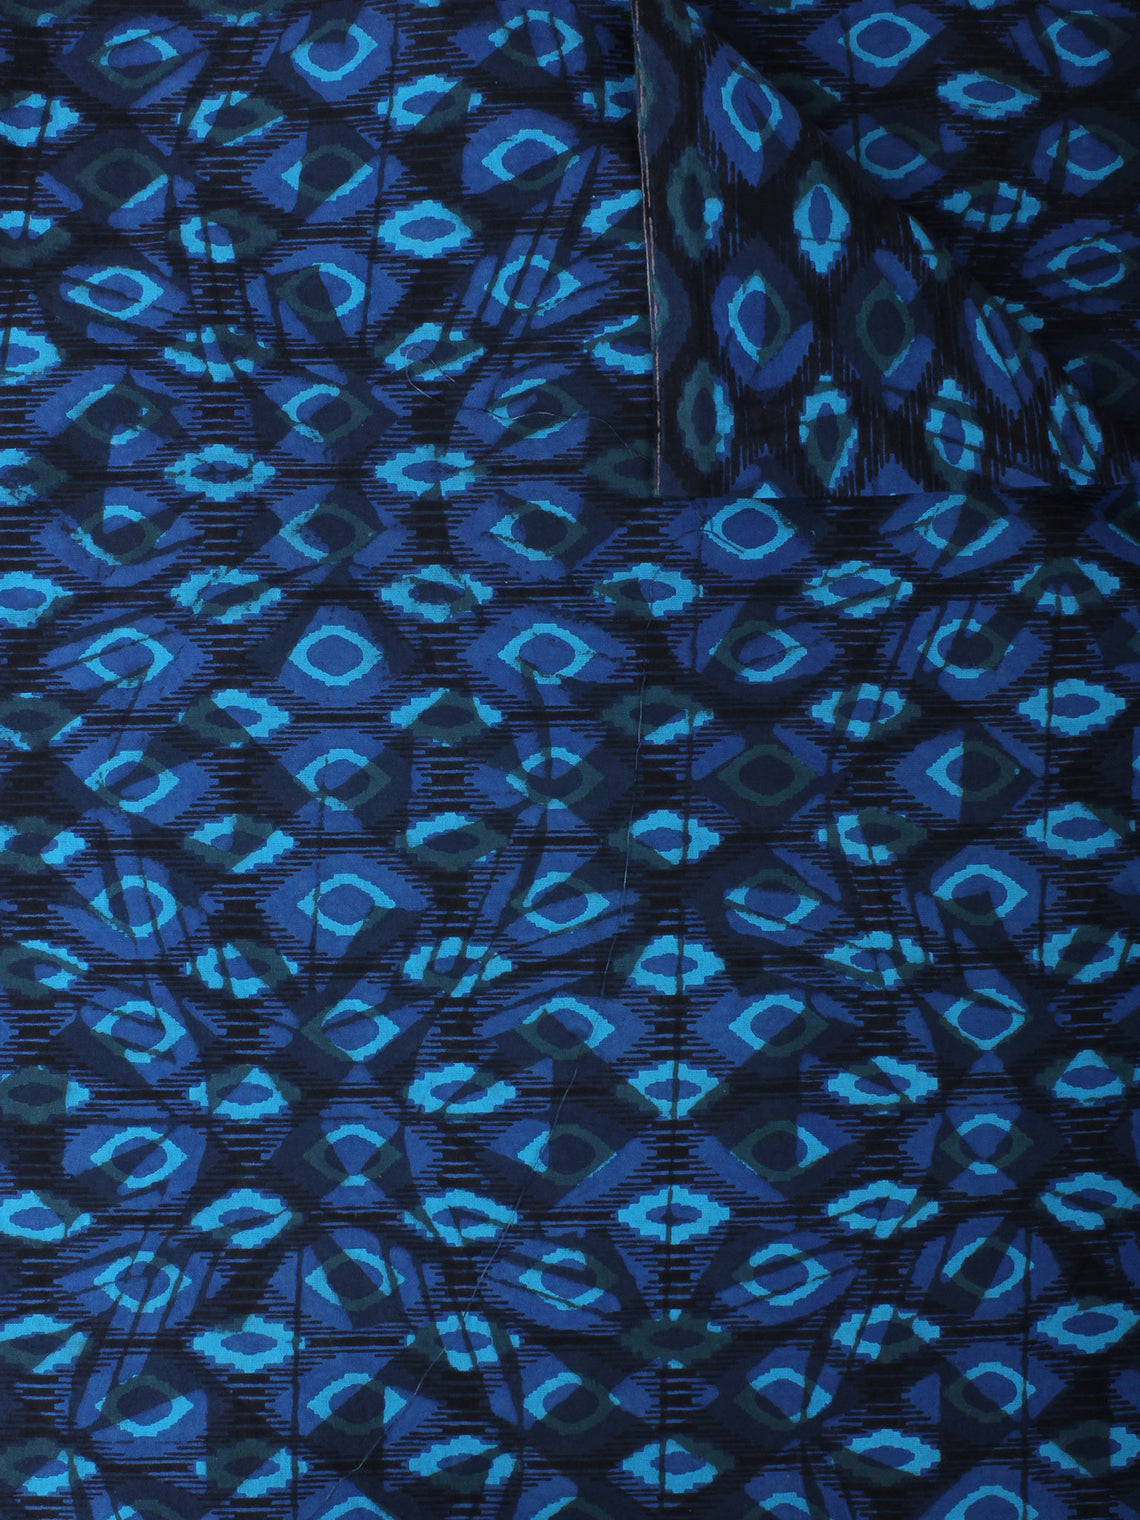 Indigo Sky Blue Hand Block Printed Cotton Cambric Fabric Per Meter - F0916414